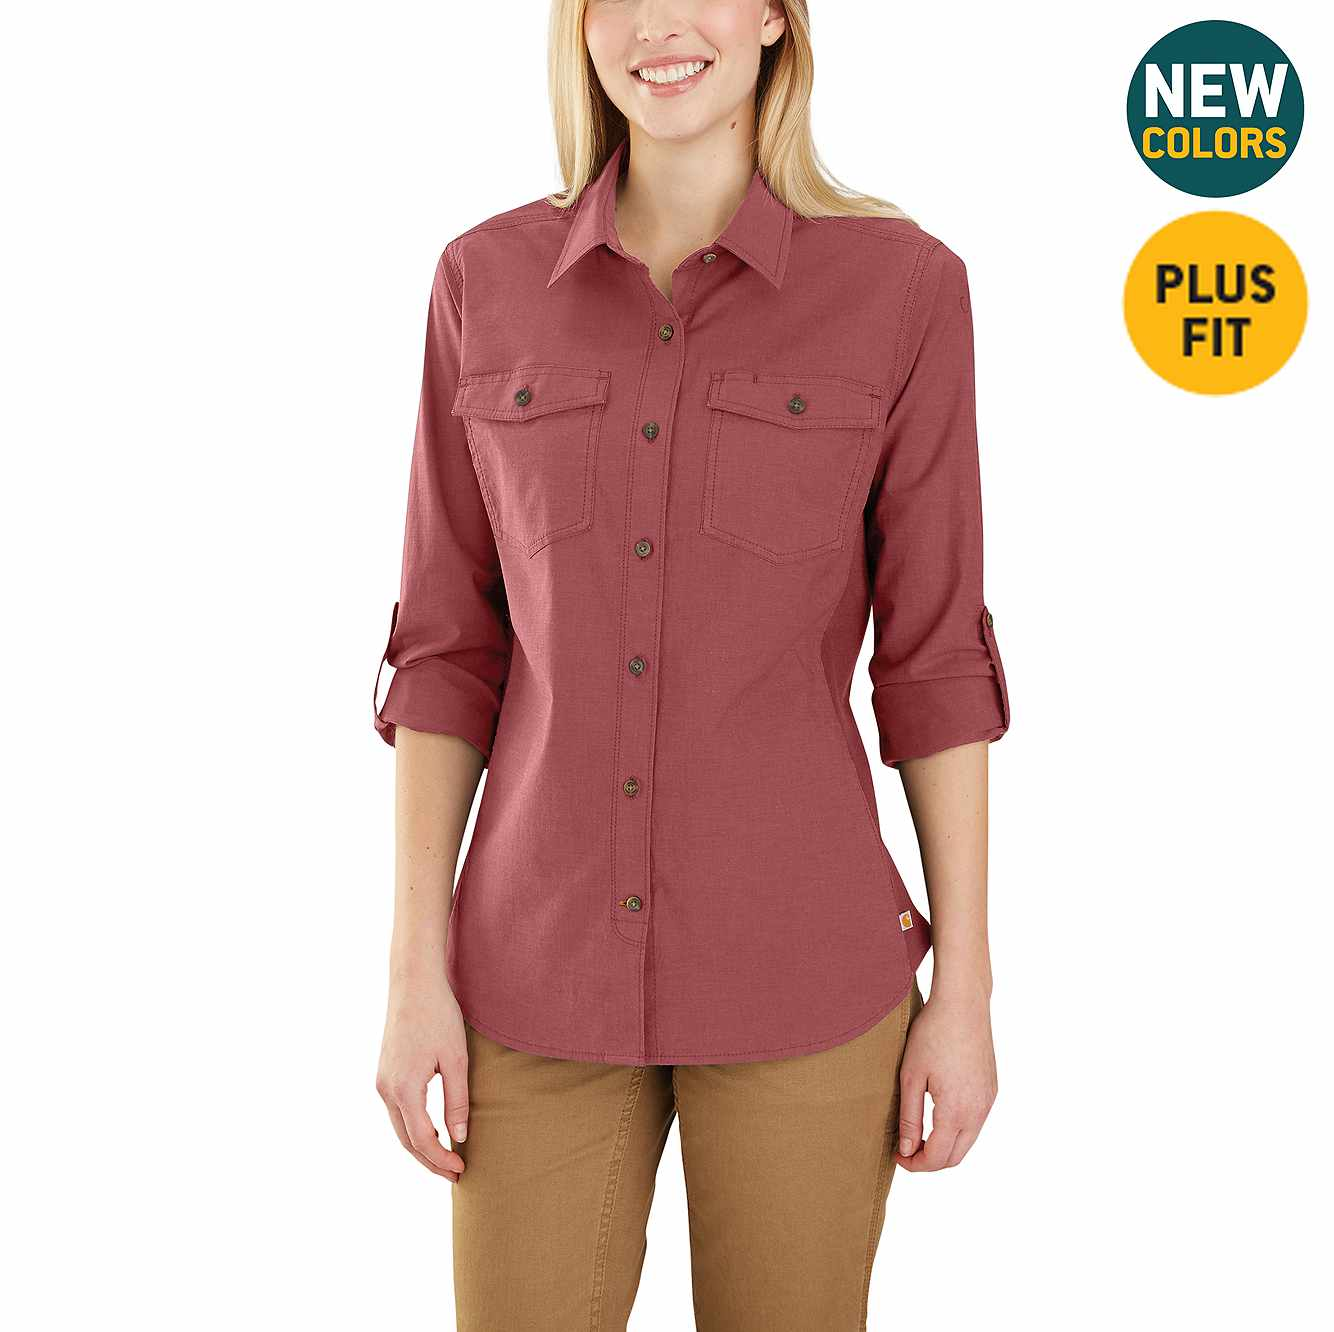 Picture of Rugged Flex Bozeman Shirt in Claystone